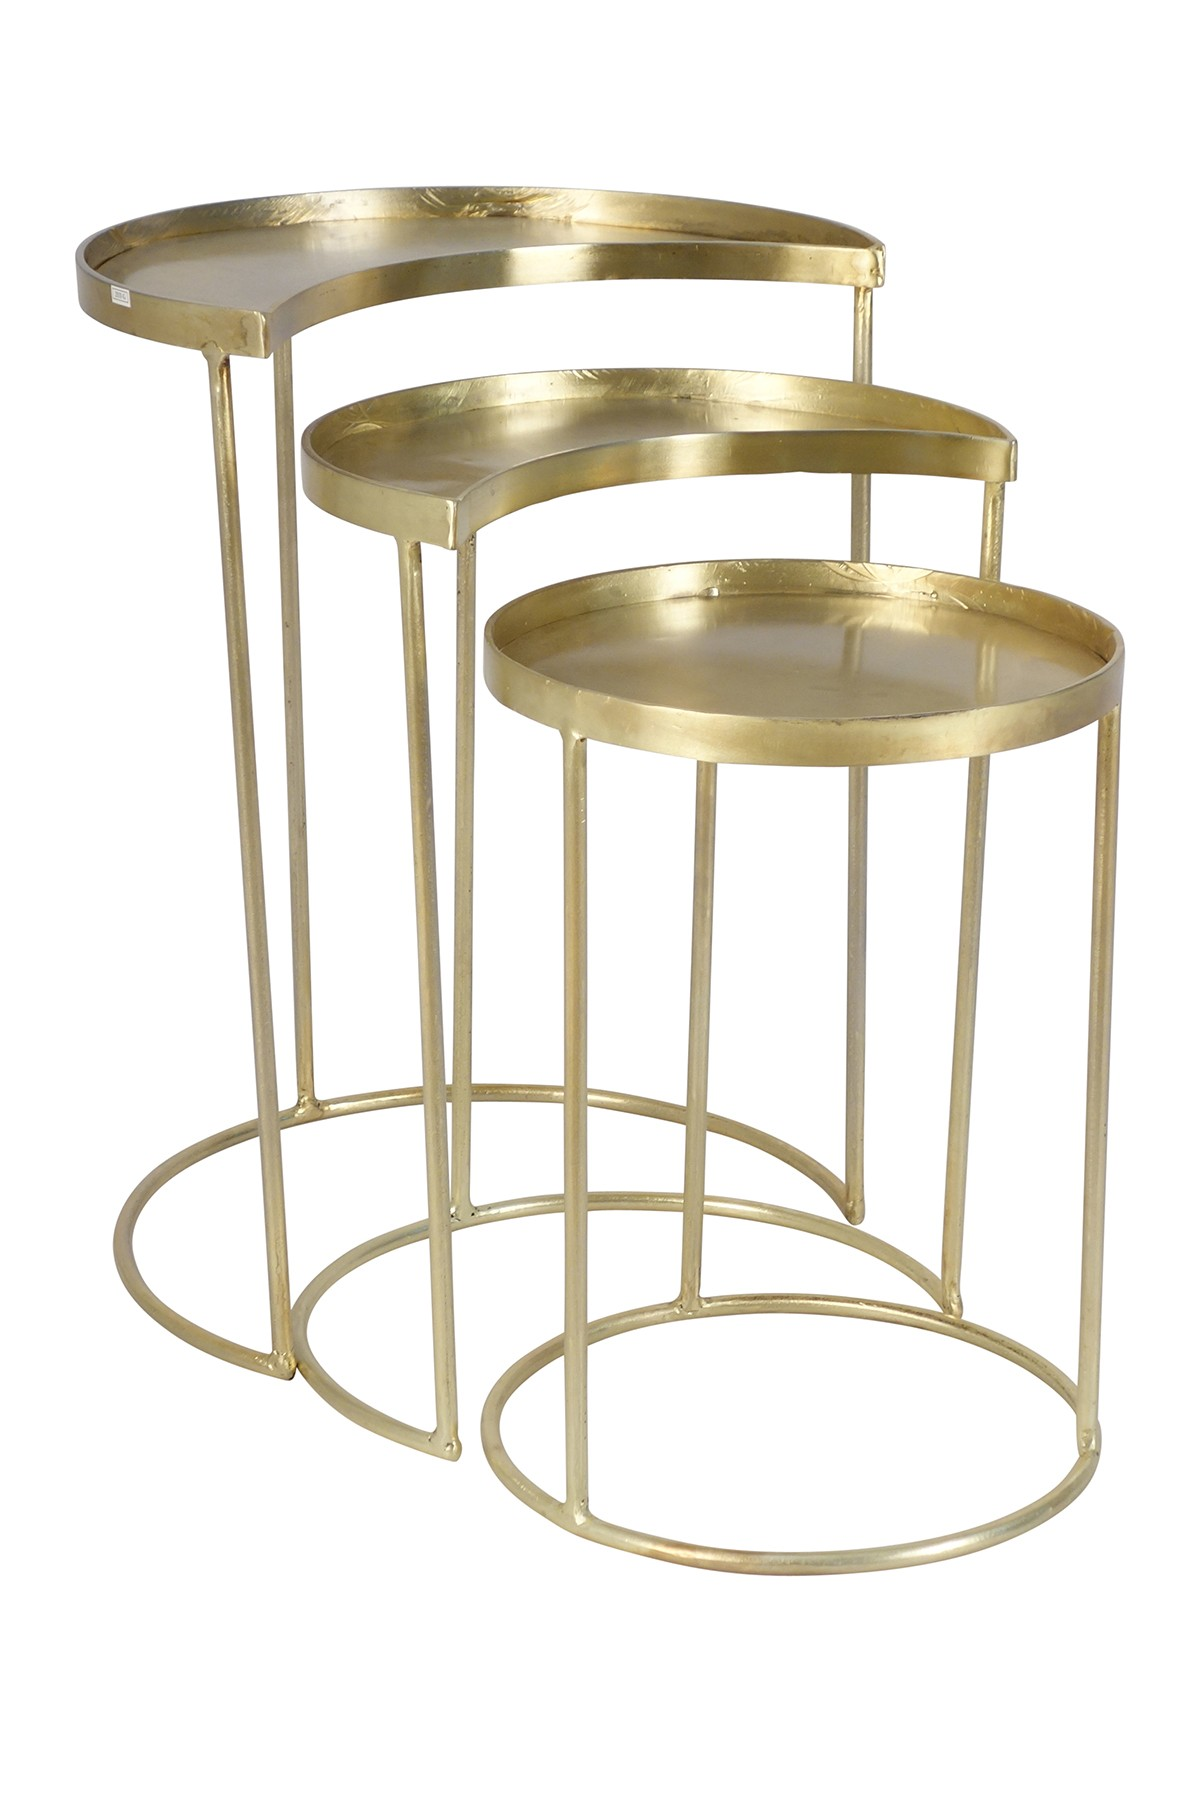 sagebrook home metal accent tables set nordstrom rack table outdoor furniture covers round mirage mirrored slim glass side sisal runner nautical childrens lamp small tall wooden